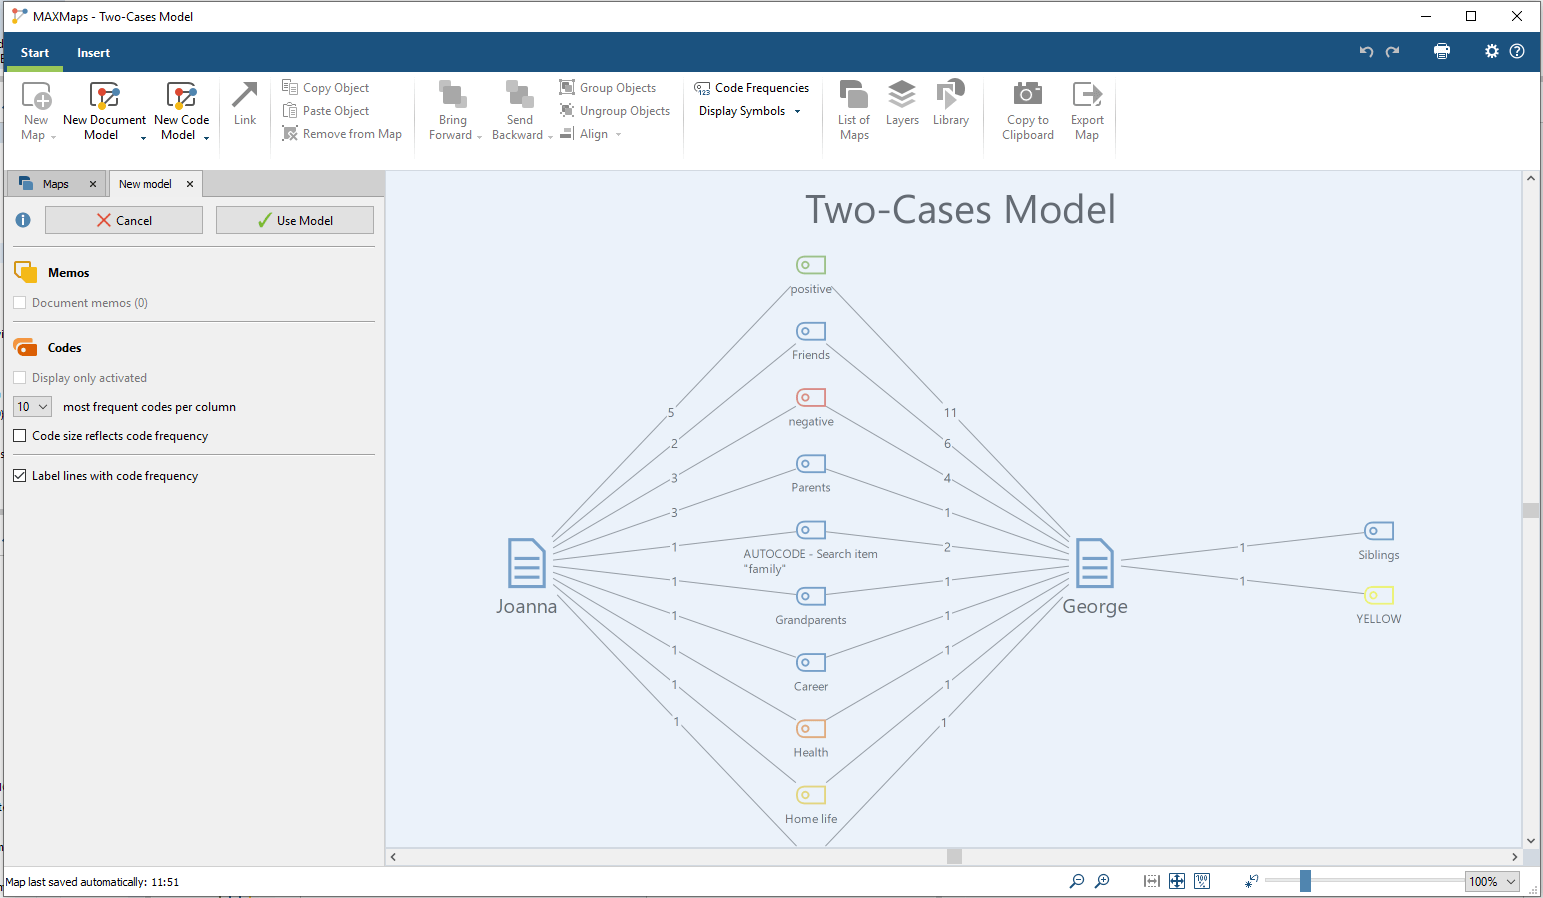 preview of a two-cases model